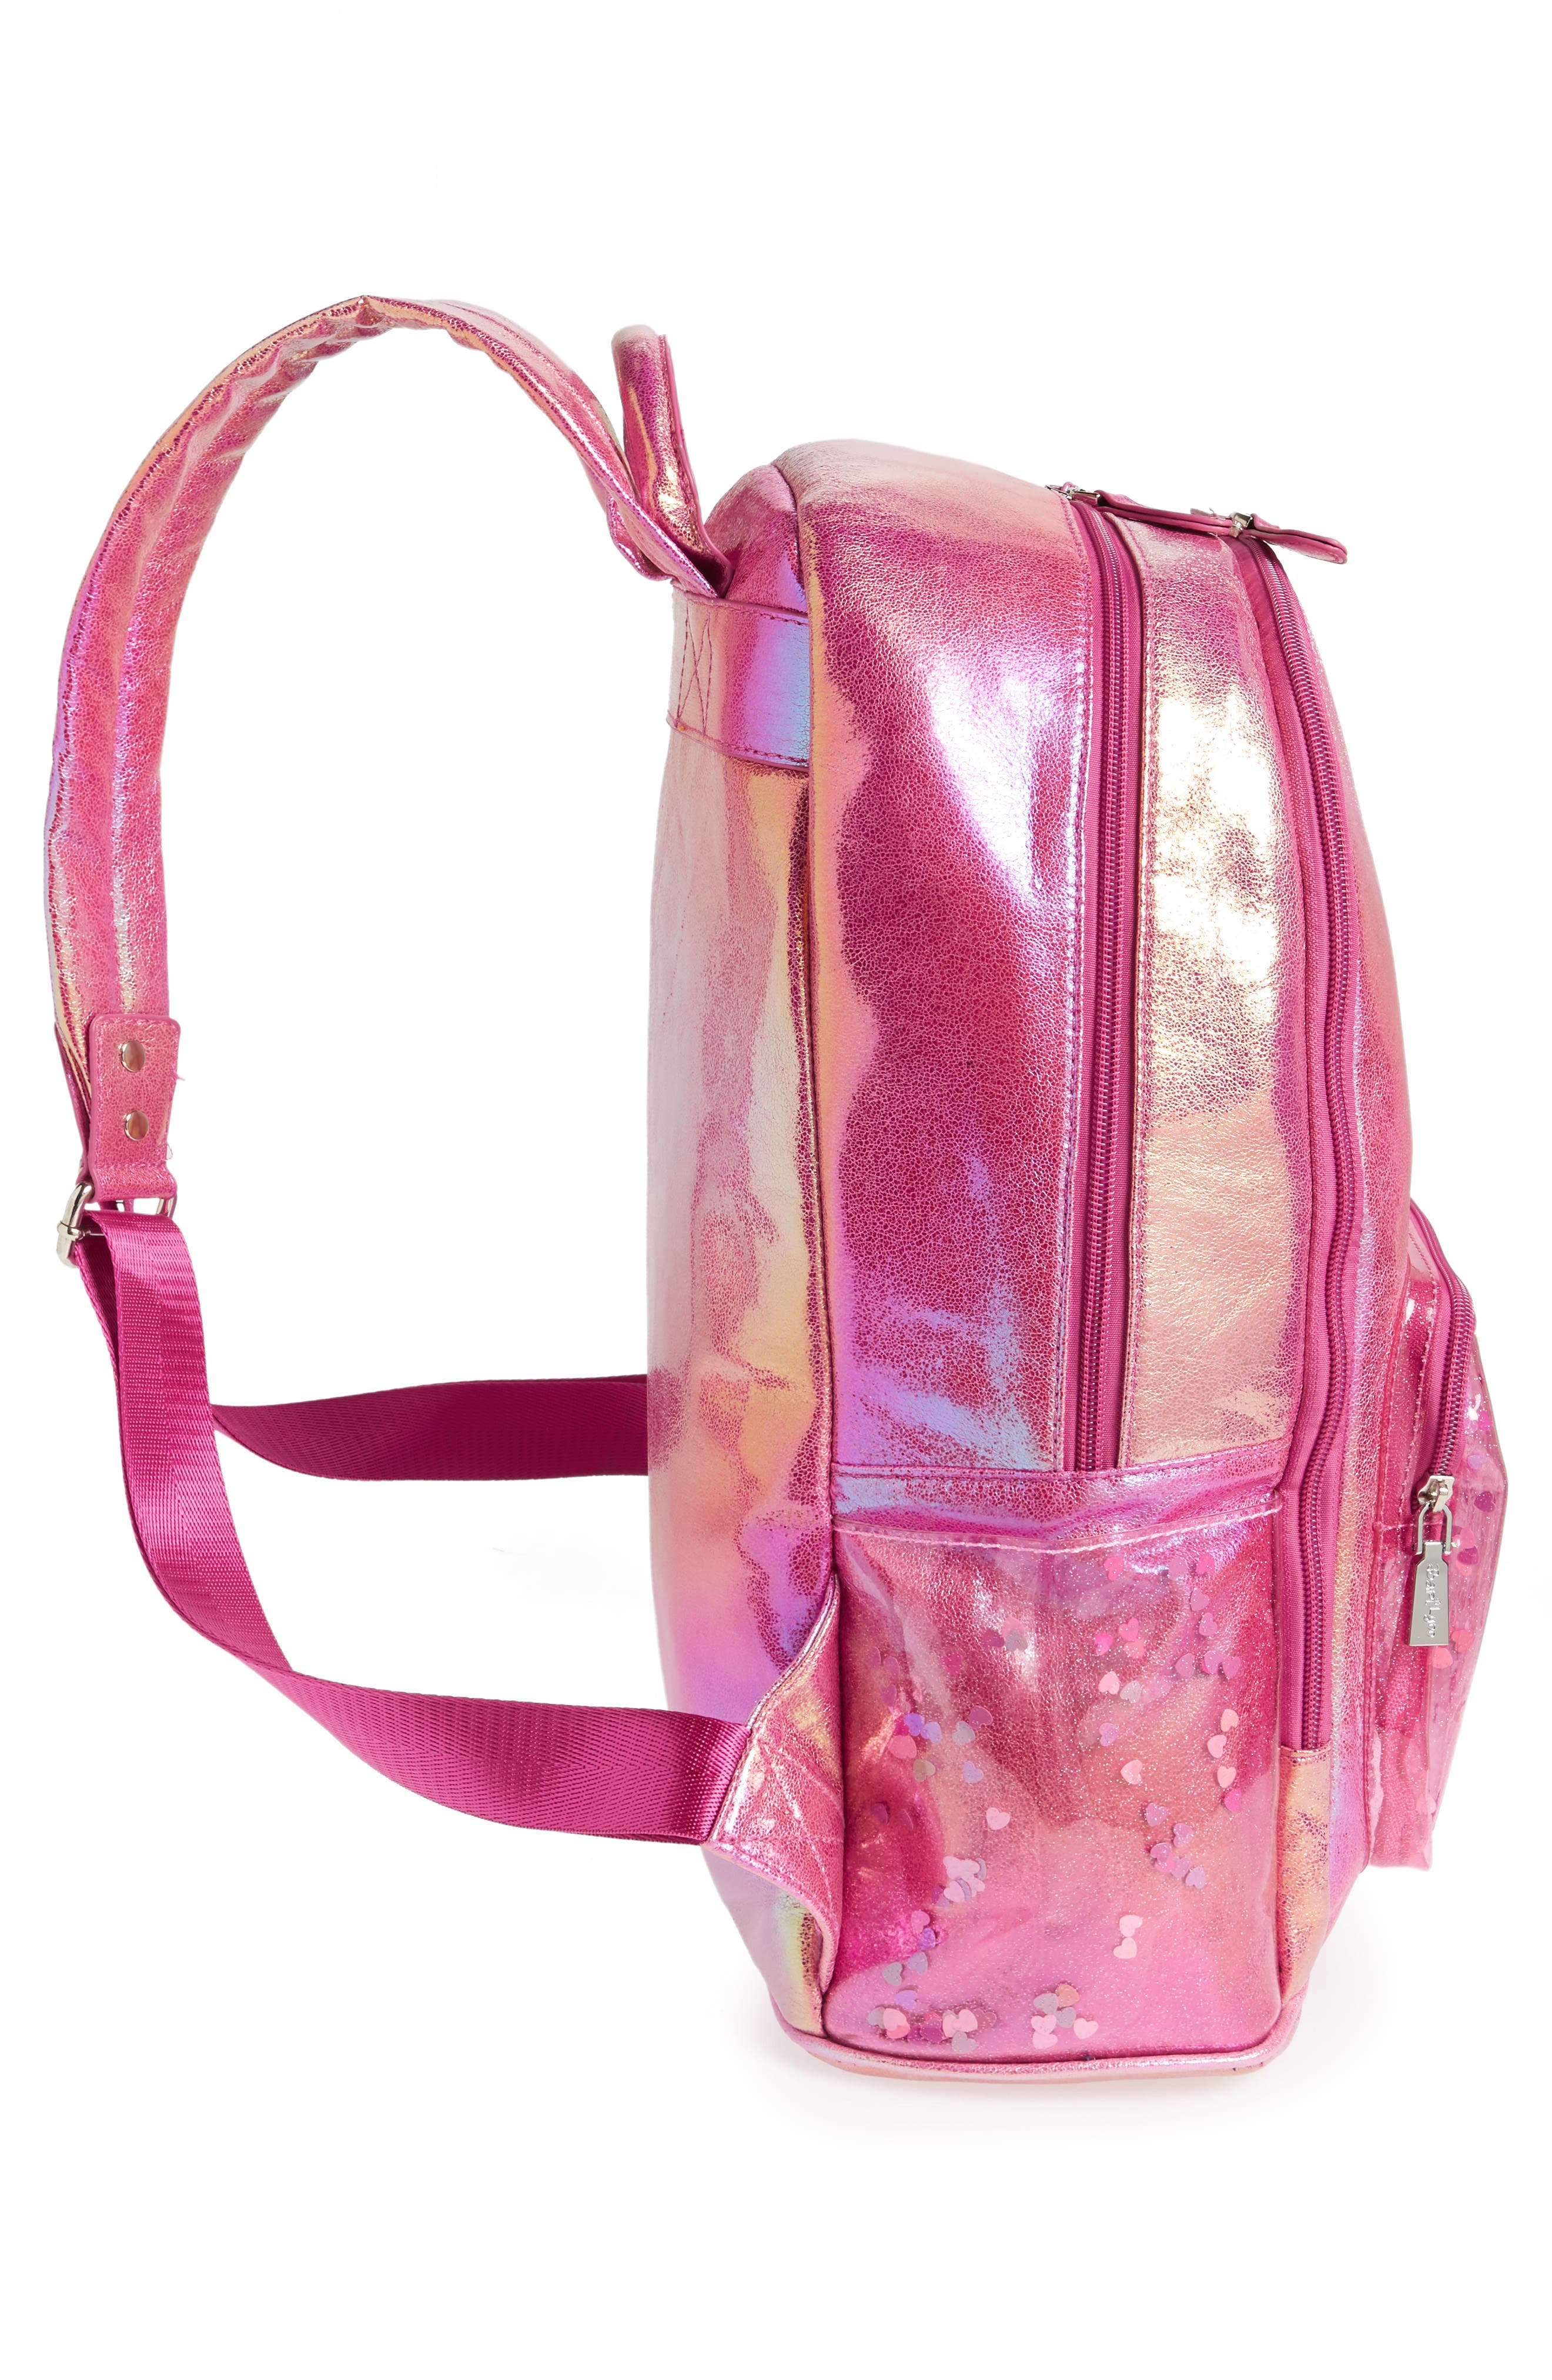 Heart Confetti Holographic Backpack,                             Alternate thumbnail 3, color,                             Pink